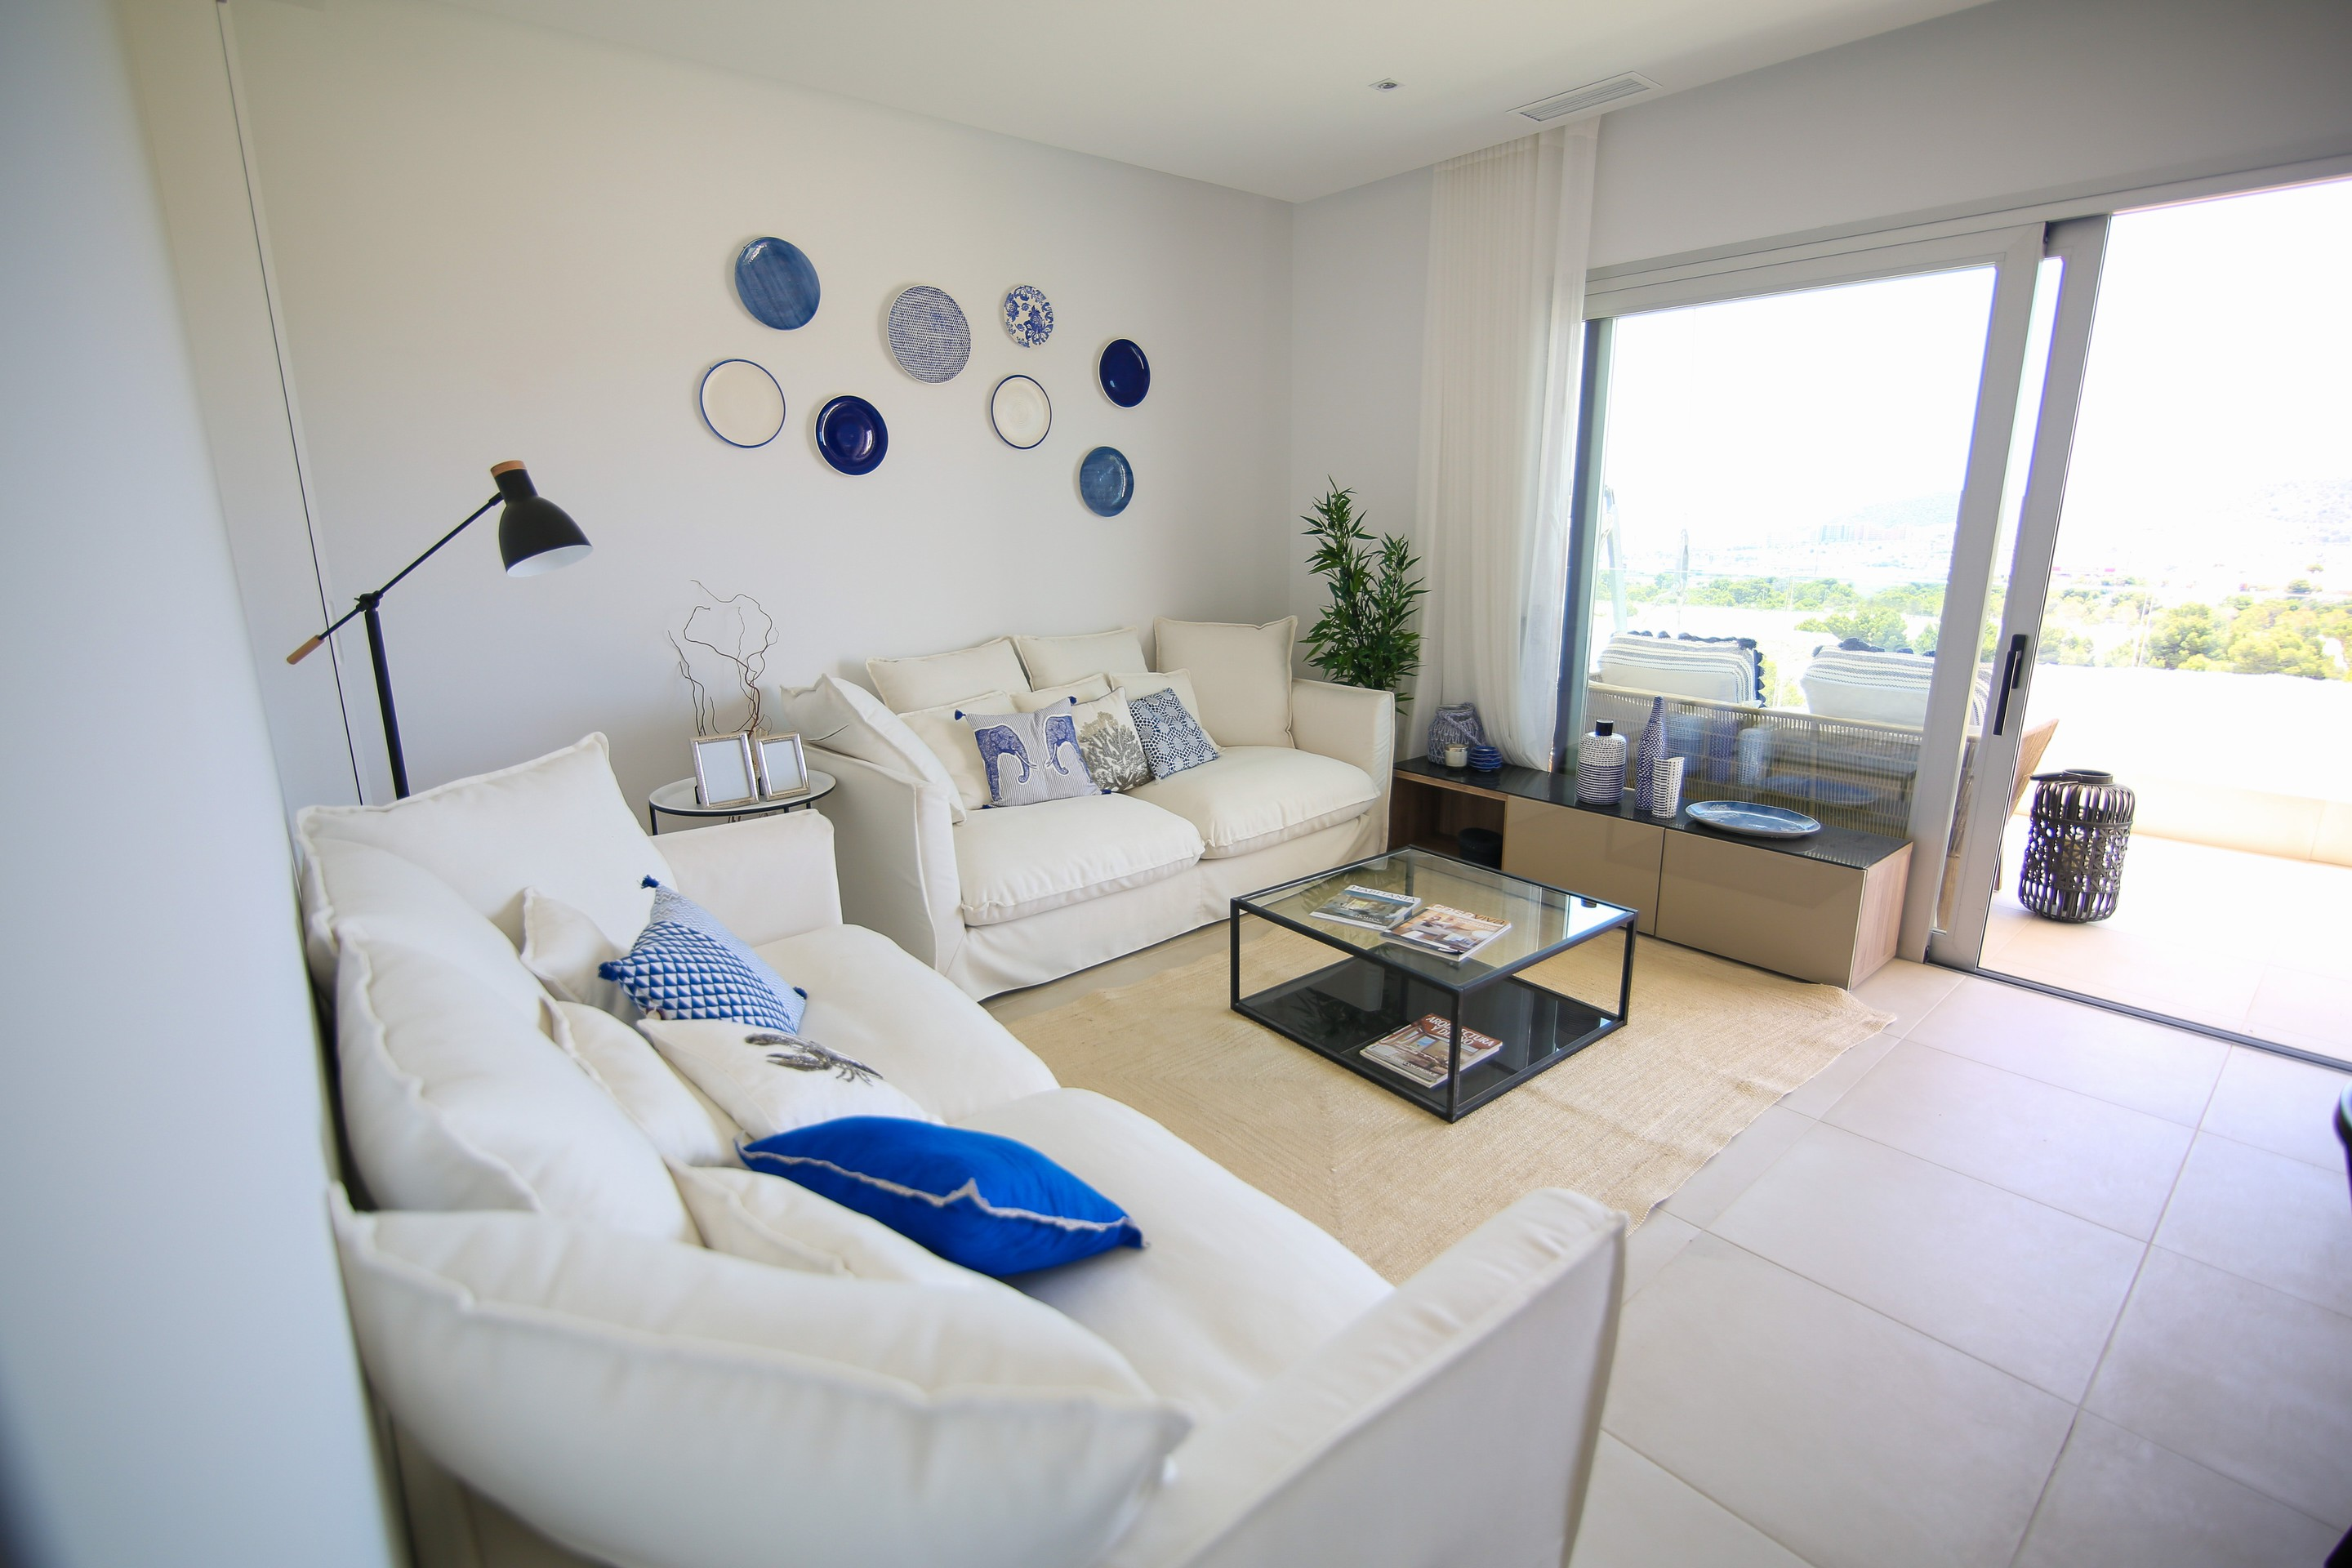 2 bedroom apartment For Sale in Finestrat - photograph 24